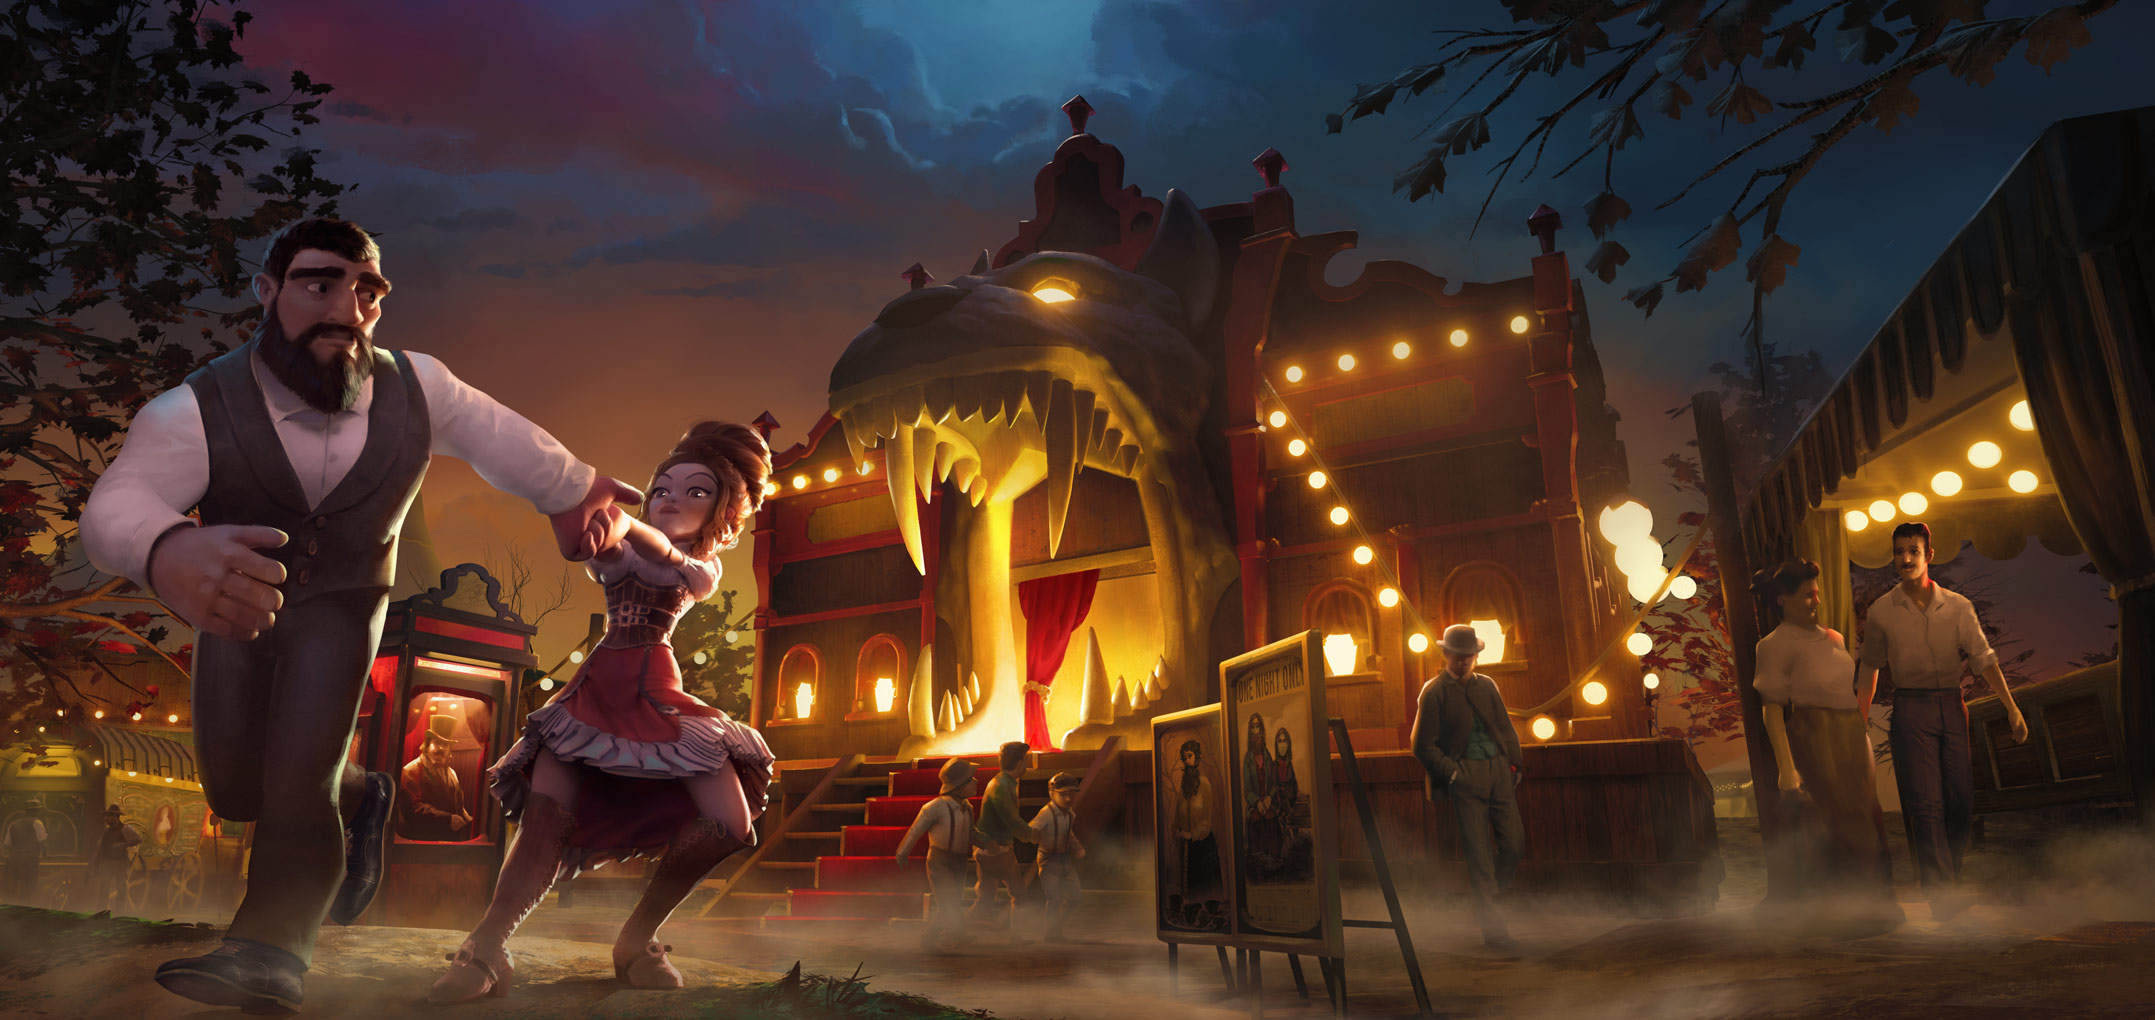 Quest Rewards Halloween Event 2020 2020 Halloween Event | Forge of Empires Wiki | Fandom